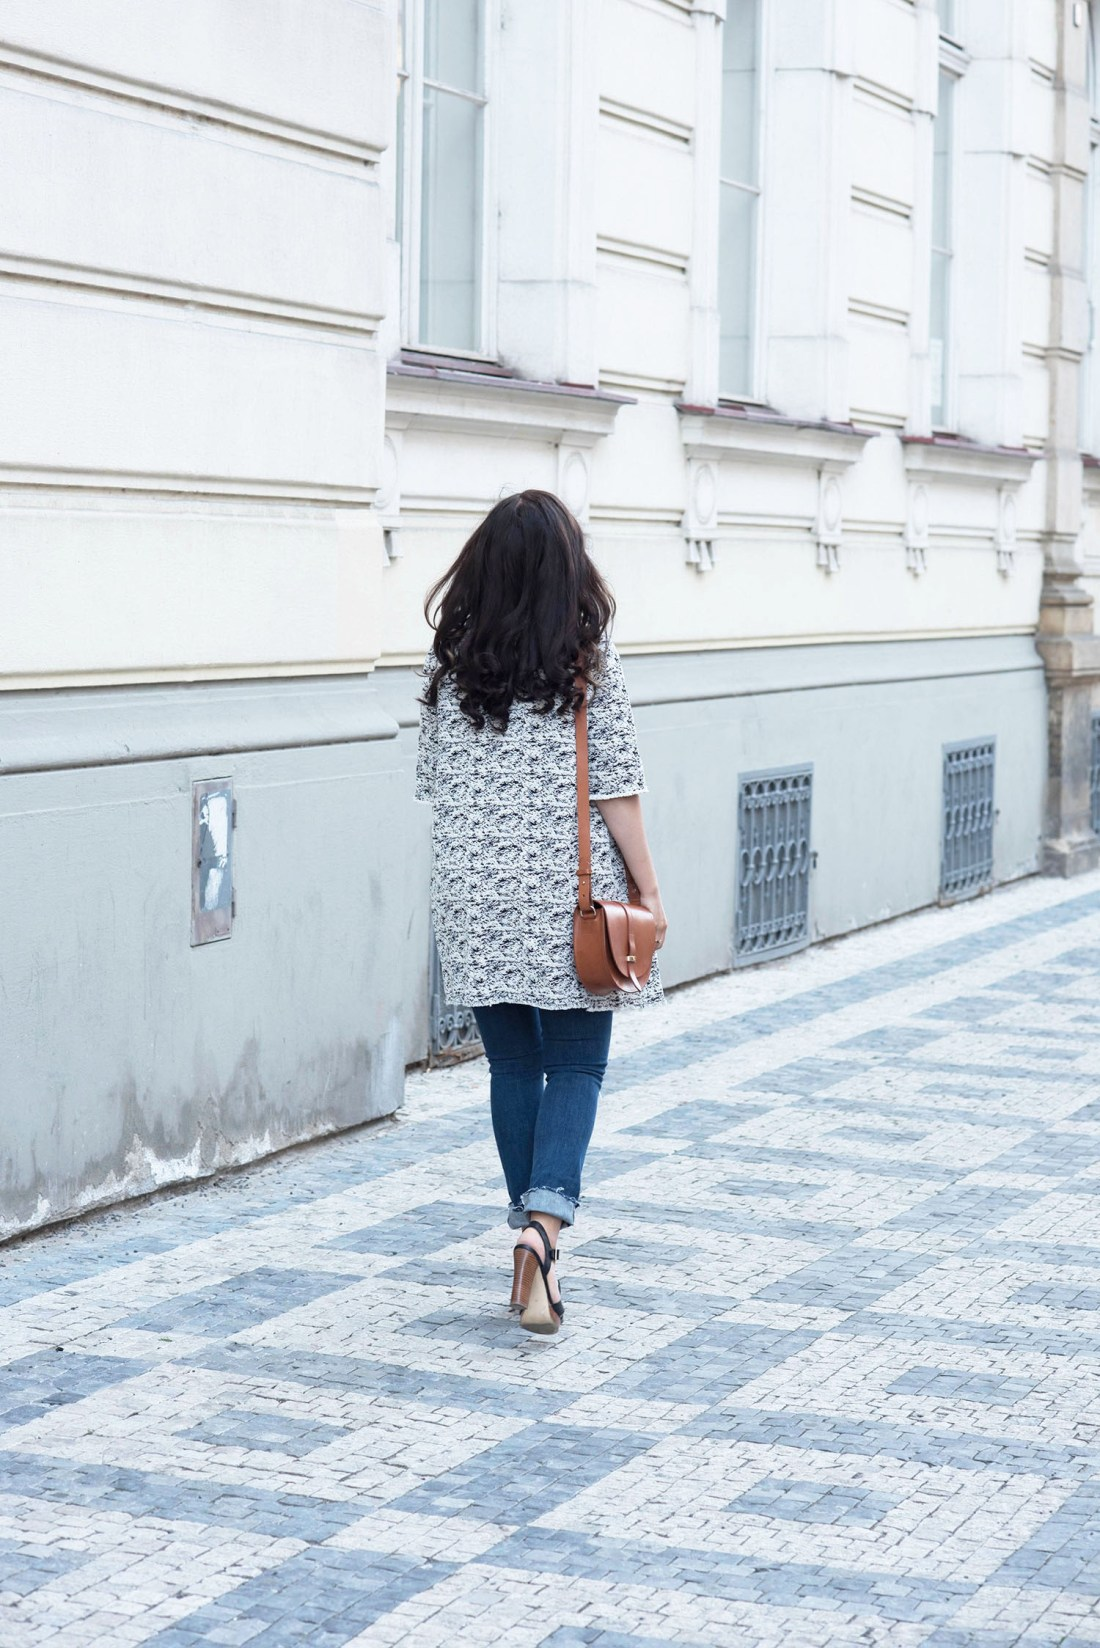 Fashion blogger Cee Fardoe of Coco & Vera walks down a Prague street wearing a Floriane Fosso coat and carrying a Sezane Claude bag